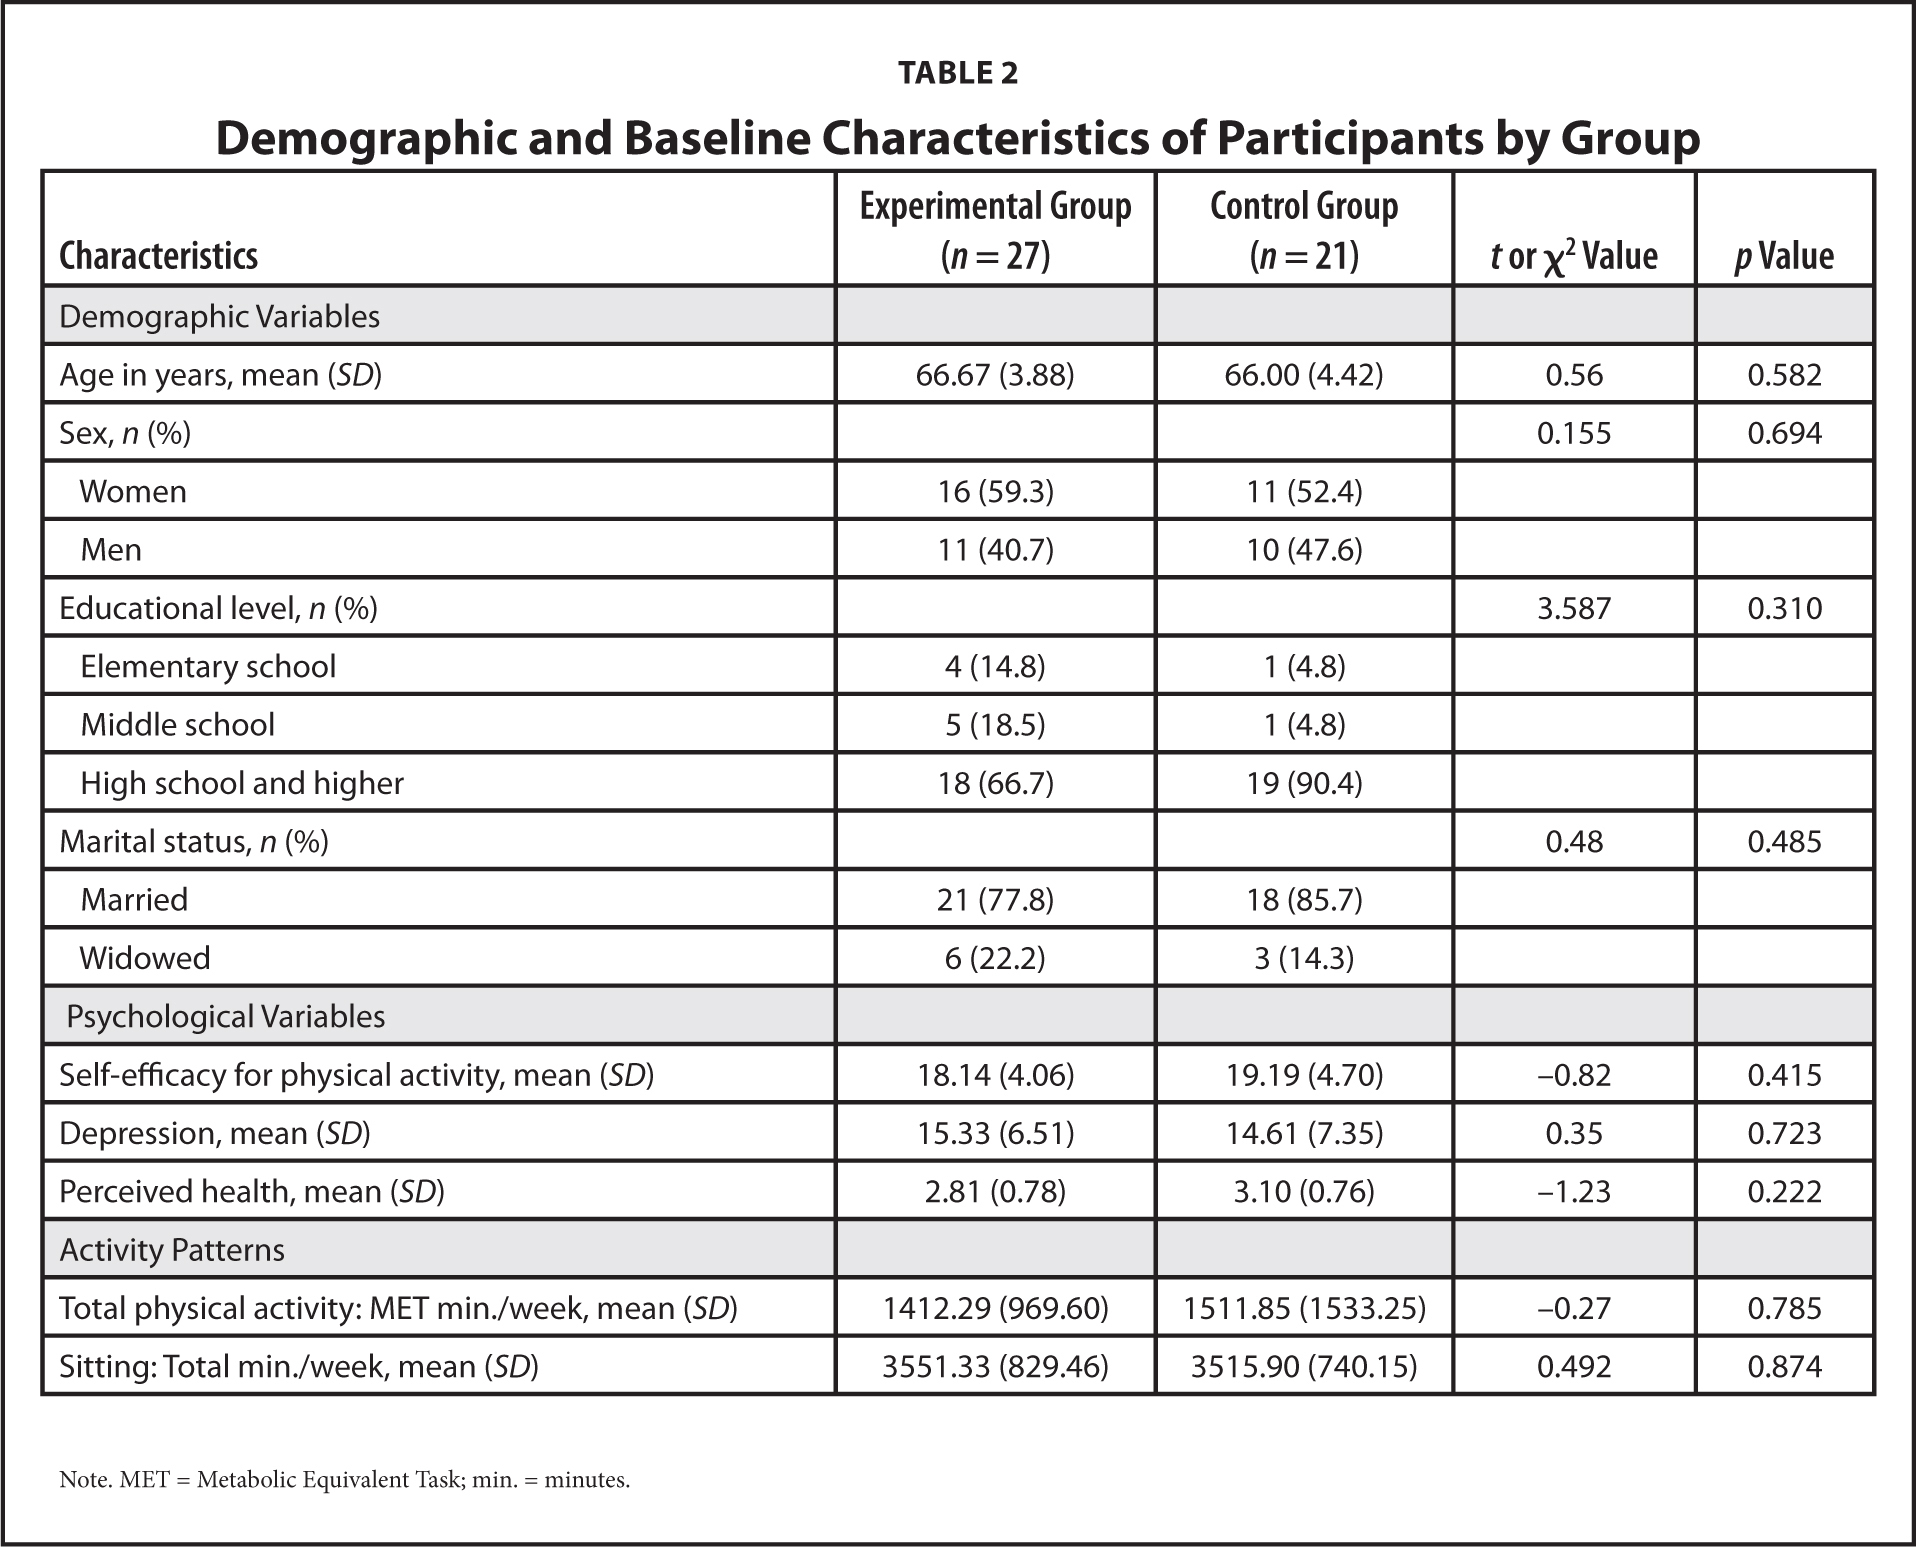 Demographic and Baseline Characteristics of Participants by Group